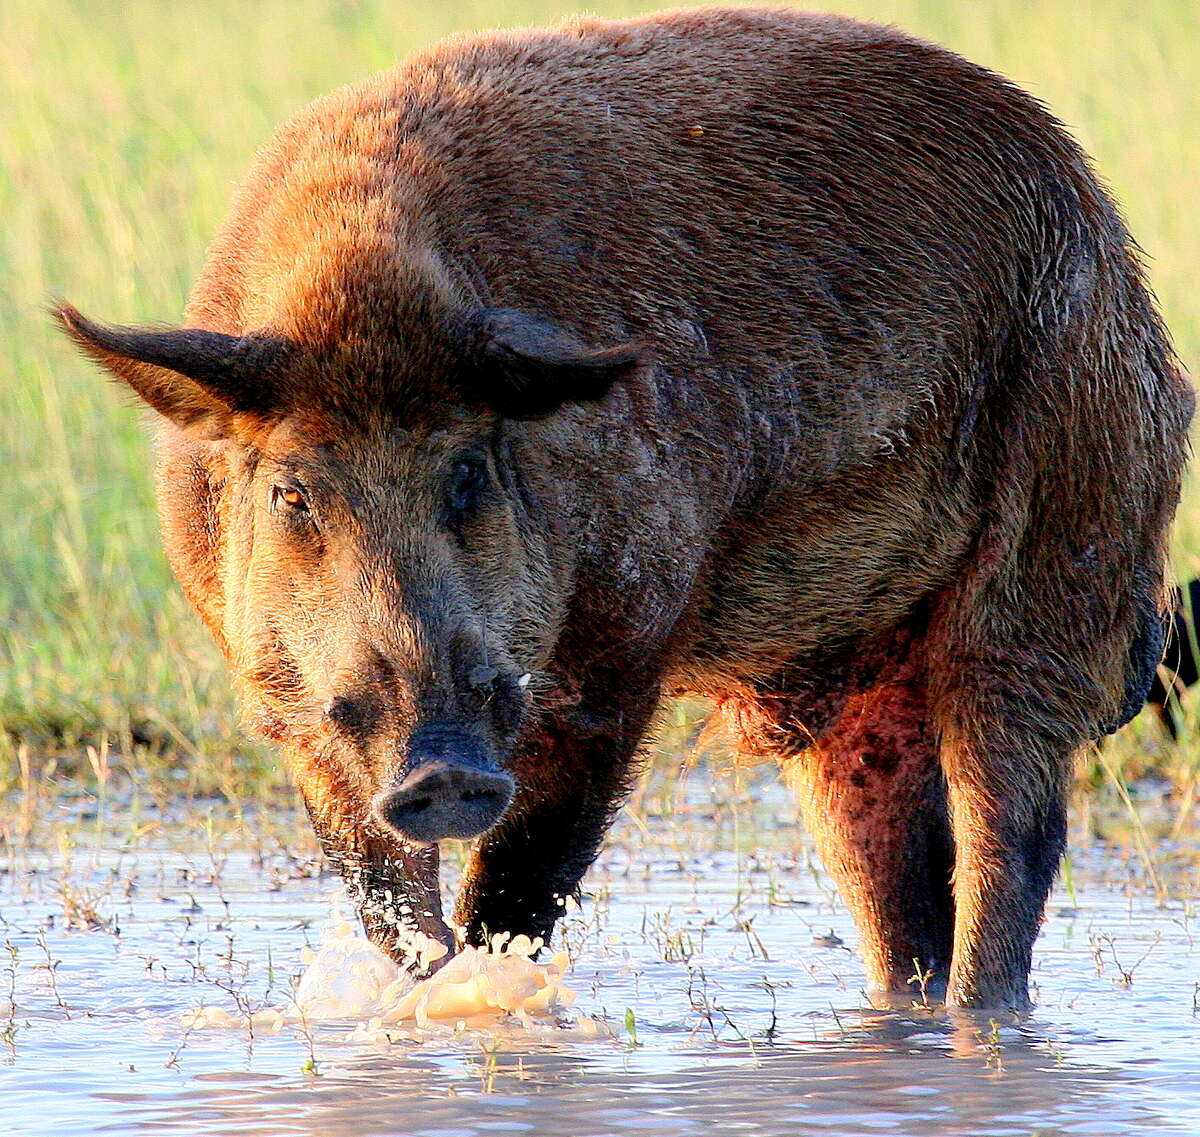 Feral hogs are as adaptable and prolific as they are destructive. Wildlife managers estimate it would take annually removing two-thirds of the pig population, estimated to be 2.6 million swine, to stabilize the population.